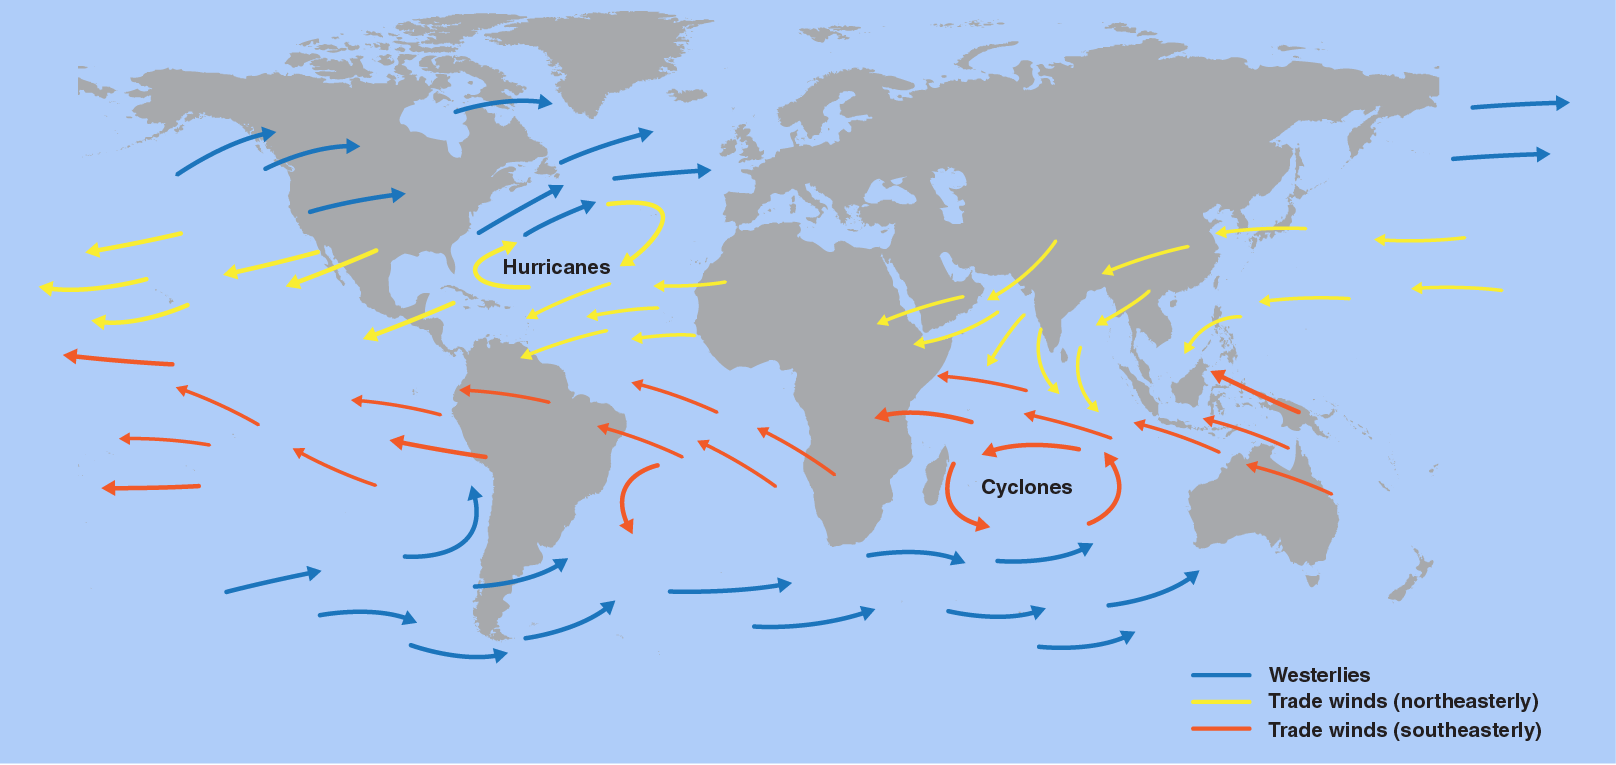 World map illustration with arrows representing trade winds.